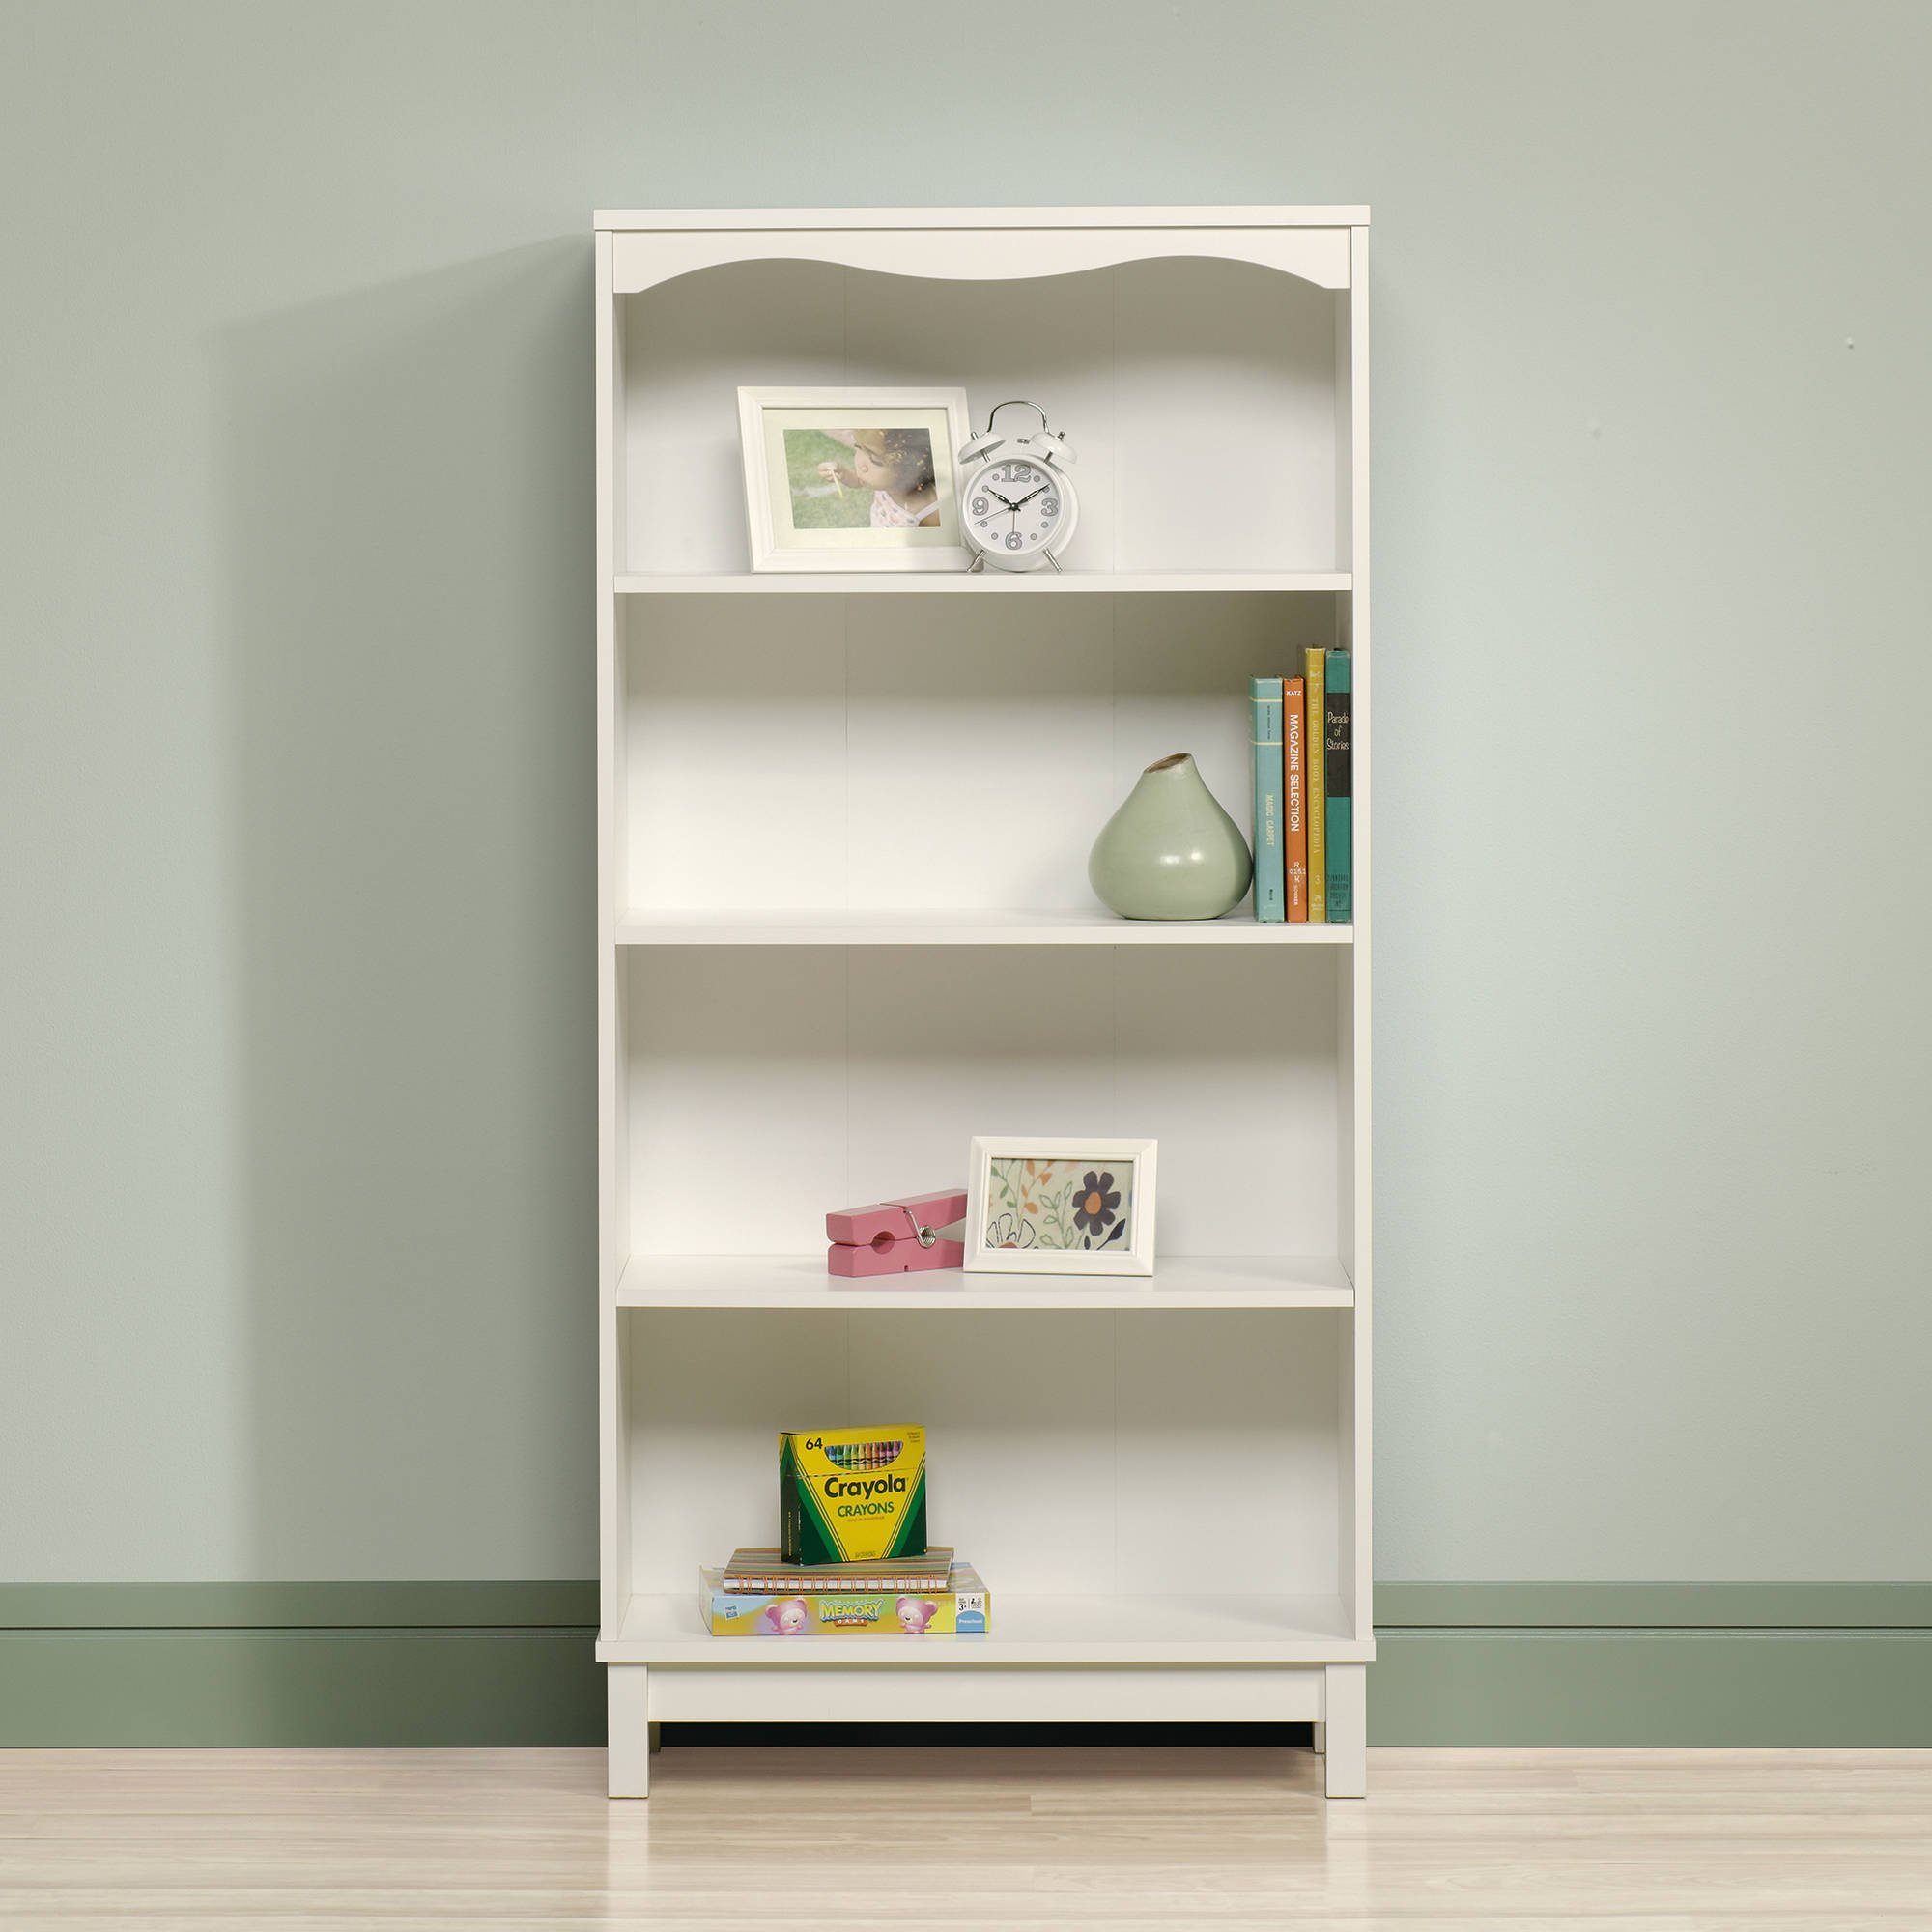 Home Indoor Furniture Sauder Storybook Bookcase Storage Soft White Finish Book Kids Rack Toy Reading Sling Organizer Books, Soft White with dimensions: 29.134'' W x 11.654''D x 59.764''H by SAU